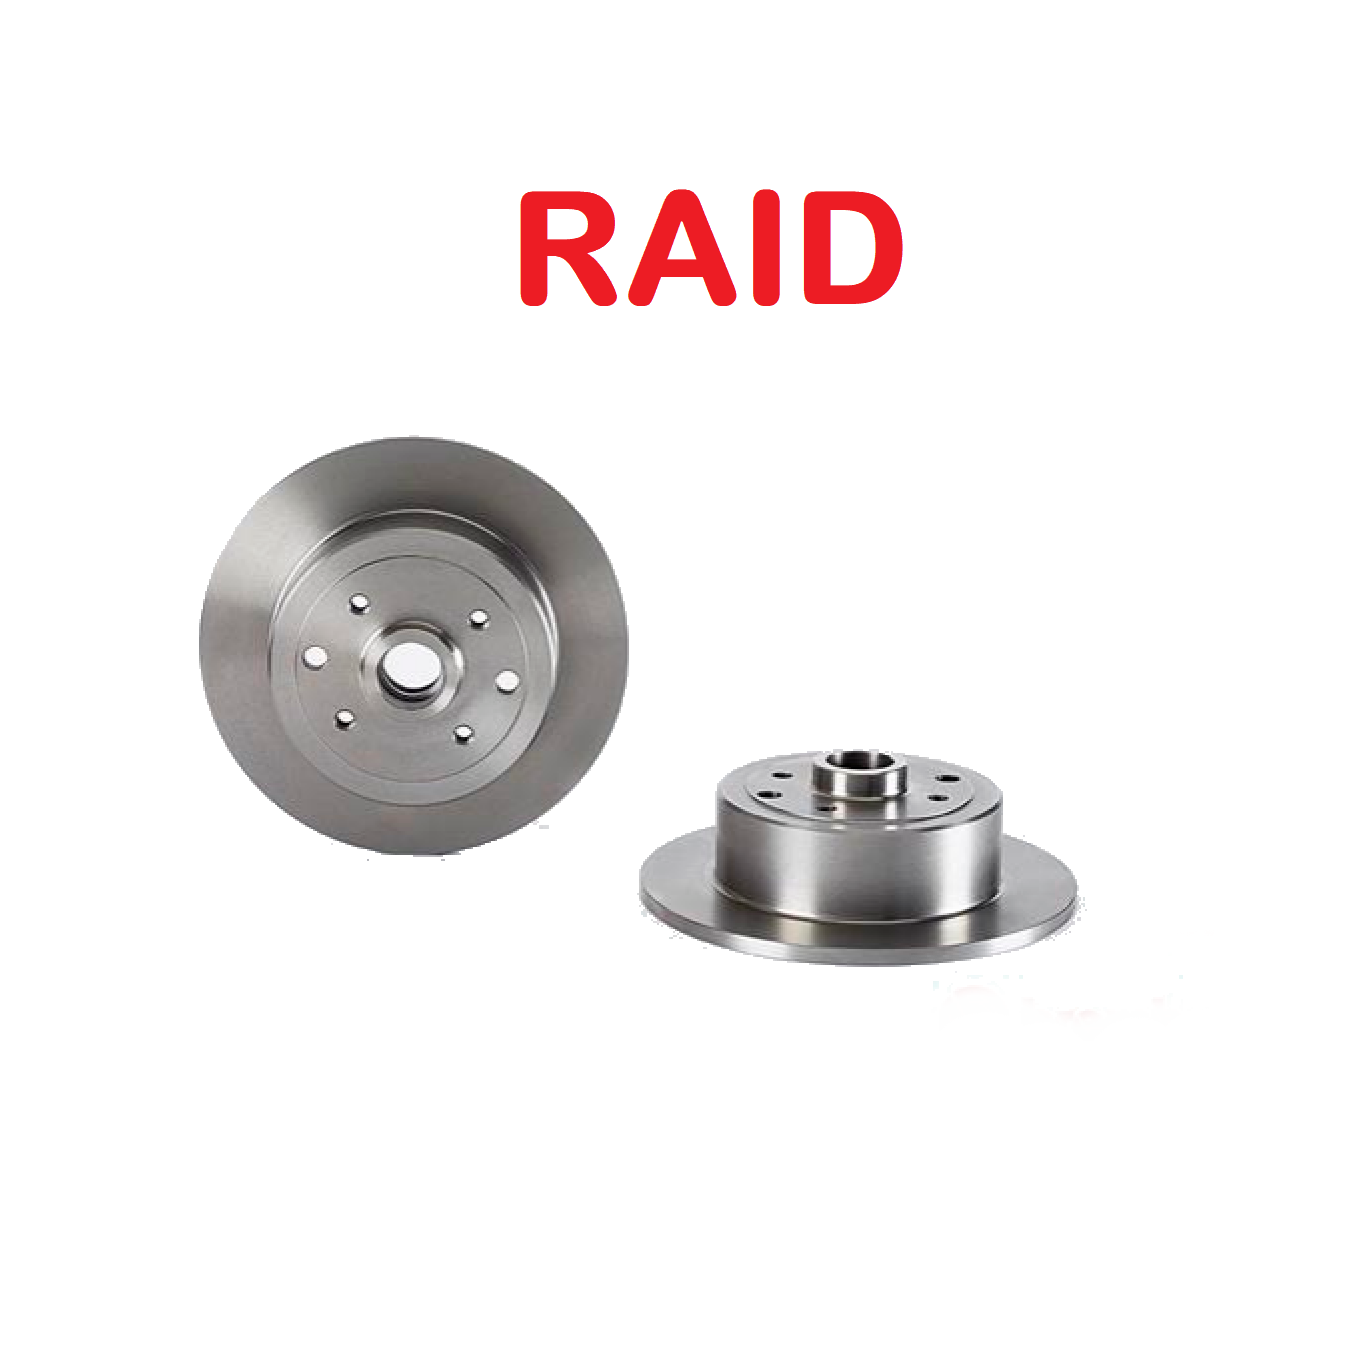 PAIR OF REAR BRAKE DISCS OPEL CALIBRA - KADETT - VECTRA RAID FOR 90348319